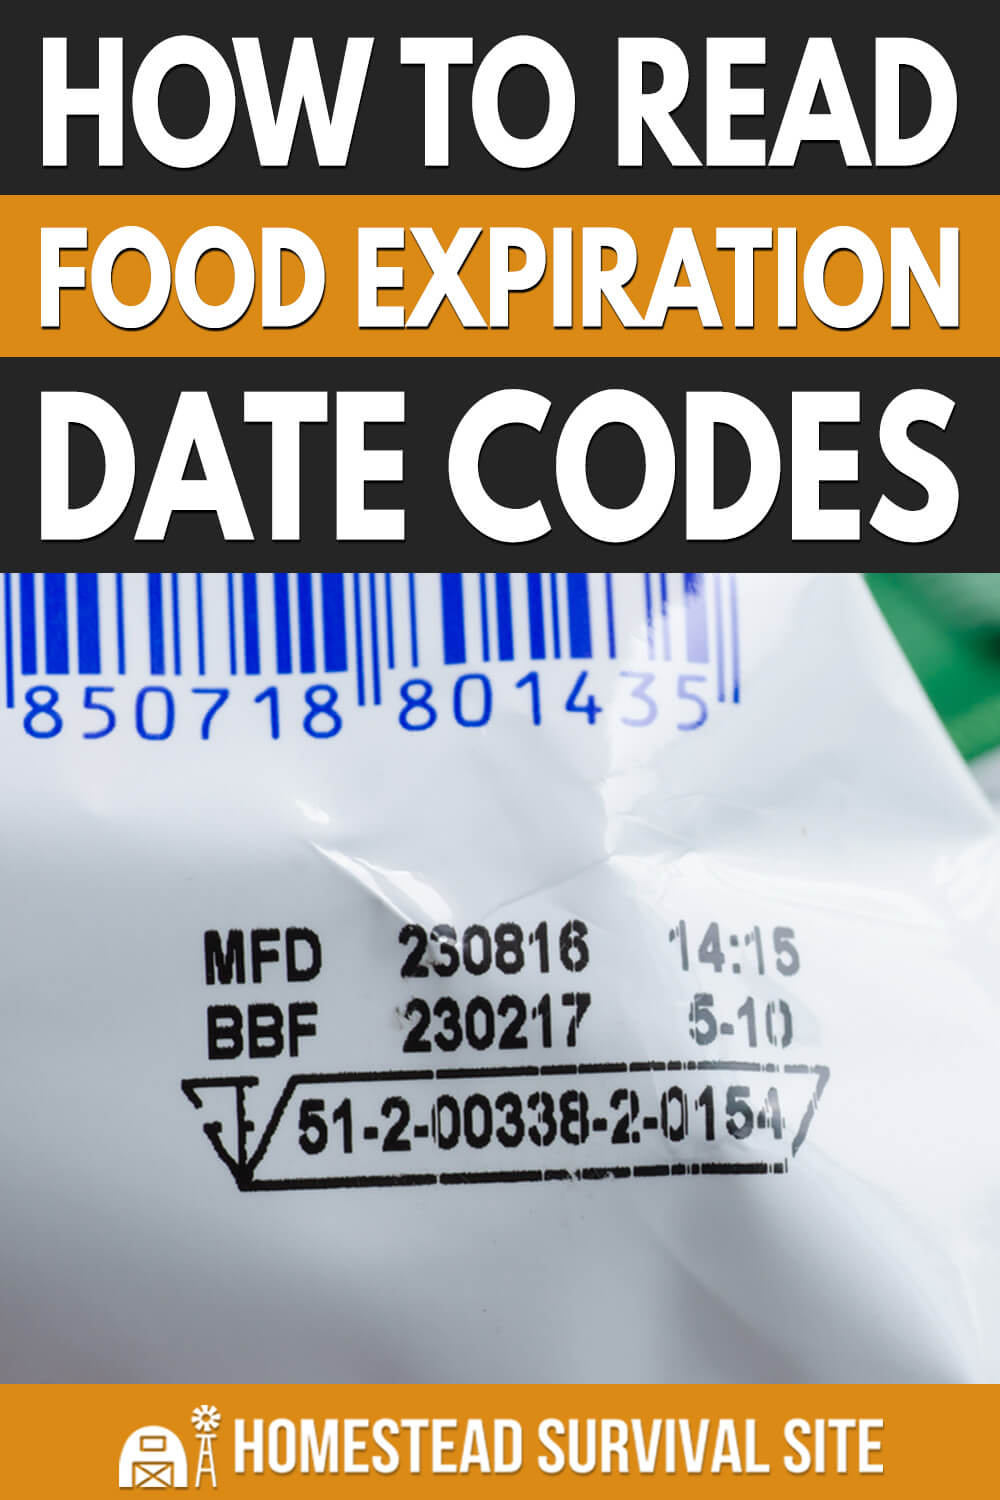 How to Read Food Expiration Date Codes